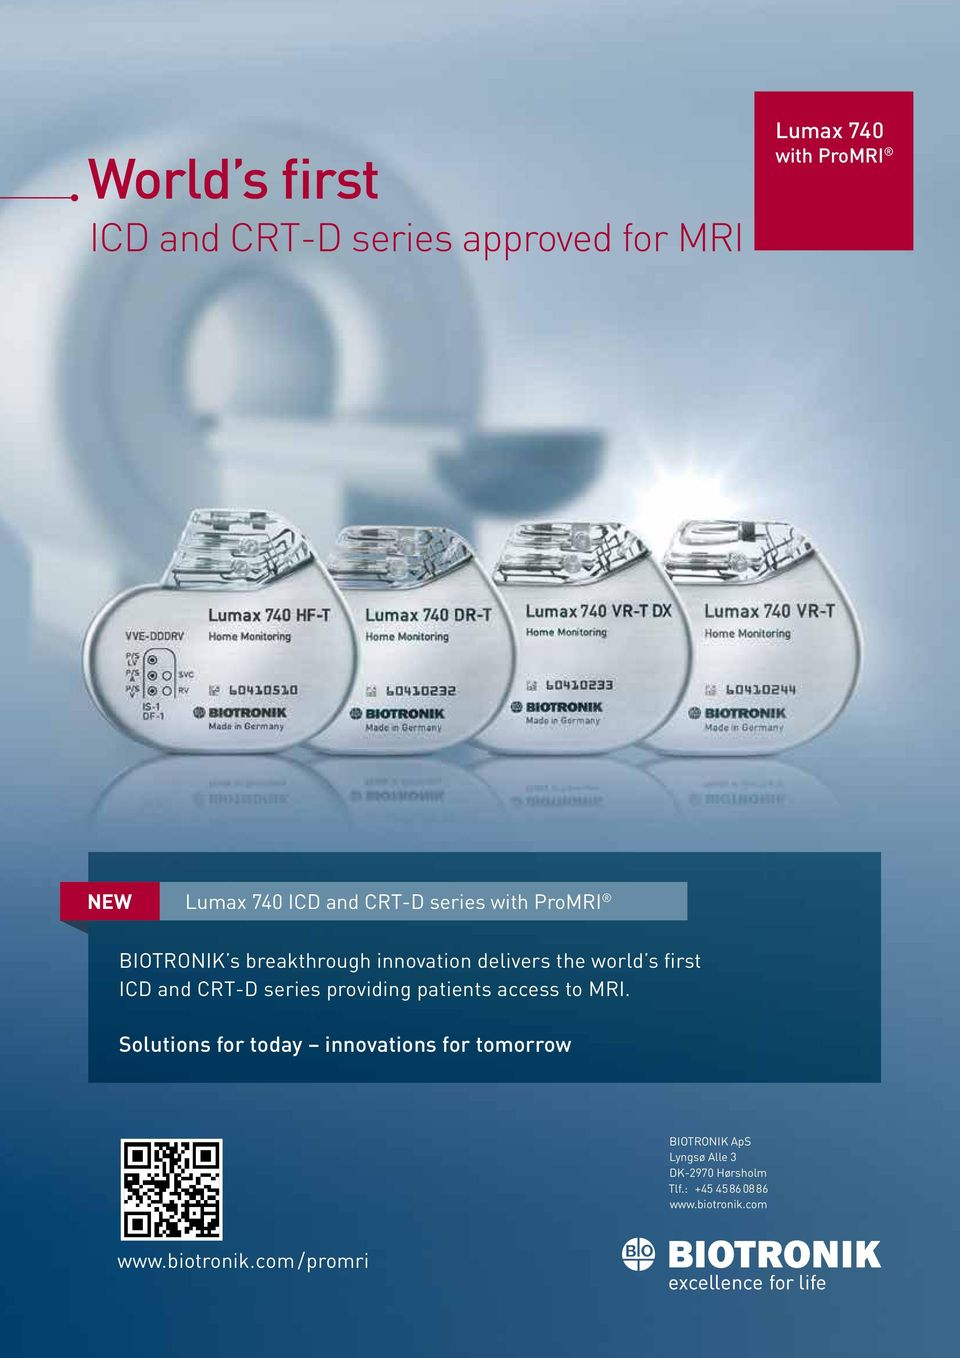 CRT-D series providing patients access to MRI.